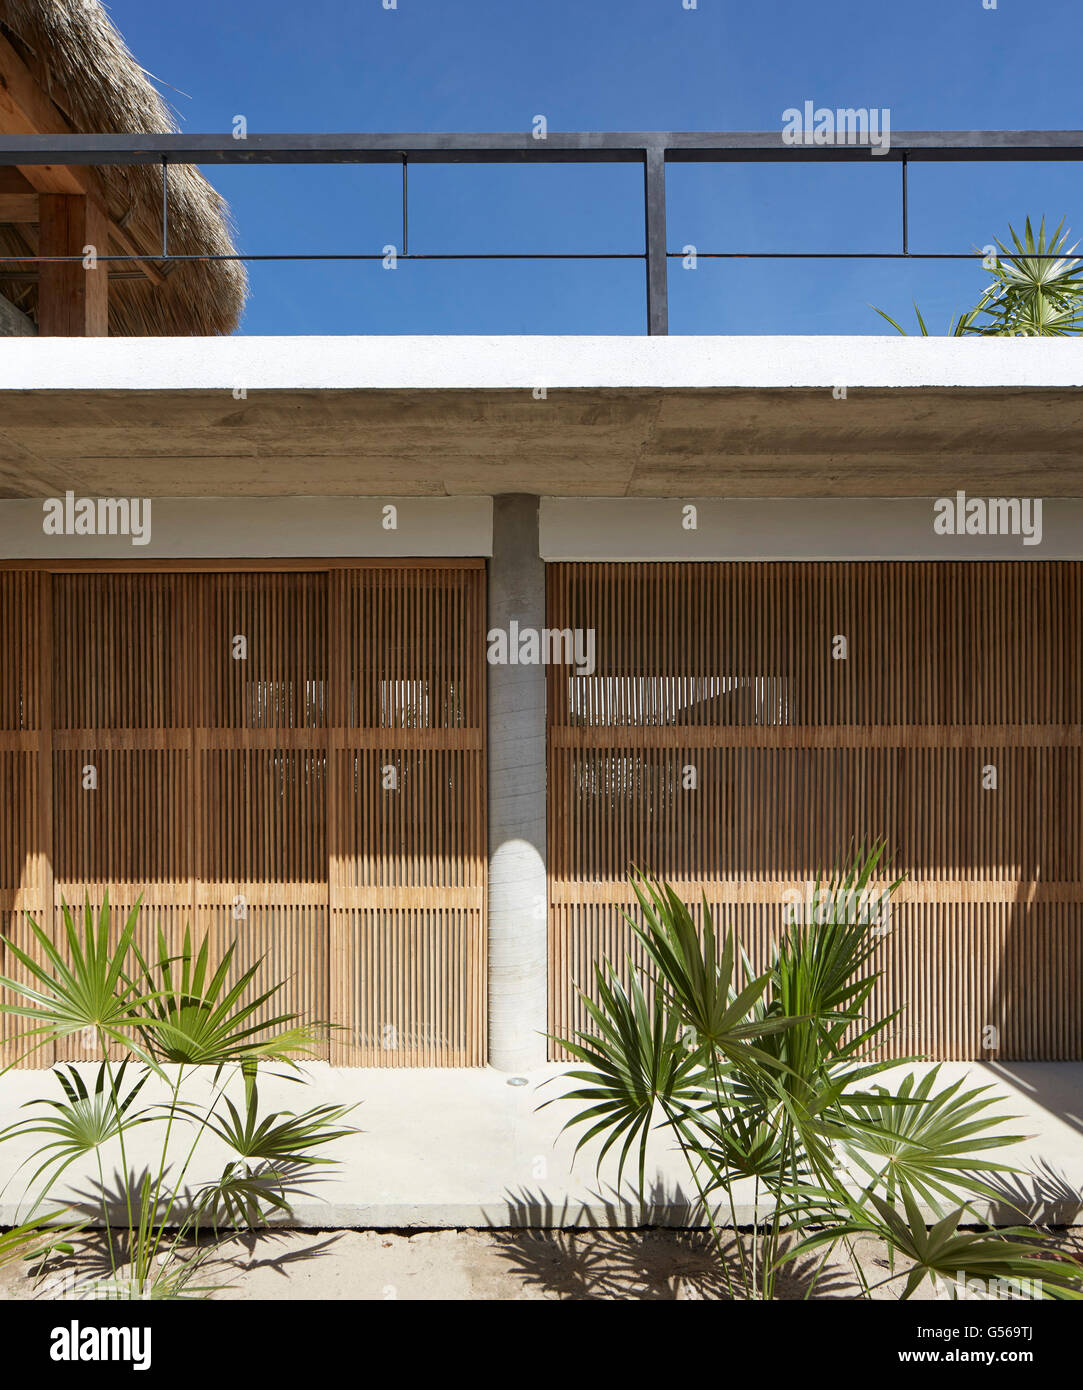 View from lower level courtyard. Casa Cal, Puerto Escondido, Mexico. Architect: BAAQ, 2015. - Stock Image